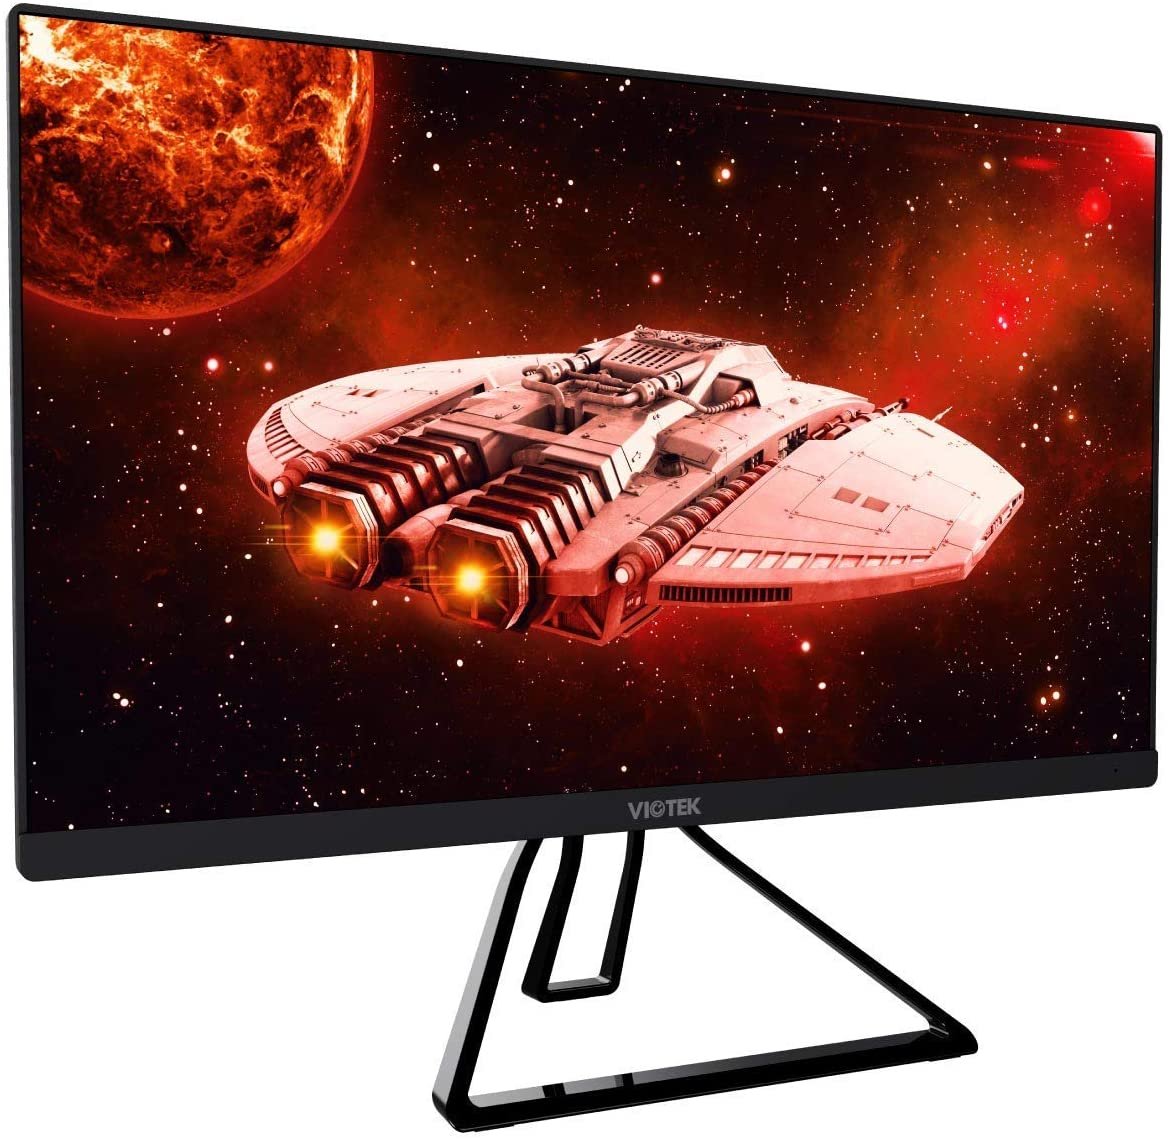 viotek GFV22CB best gaming monitor under $150 144hz